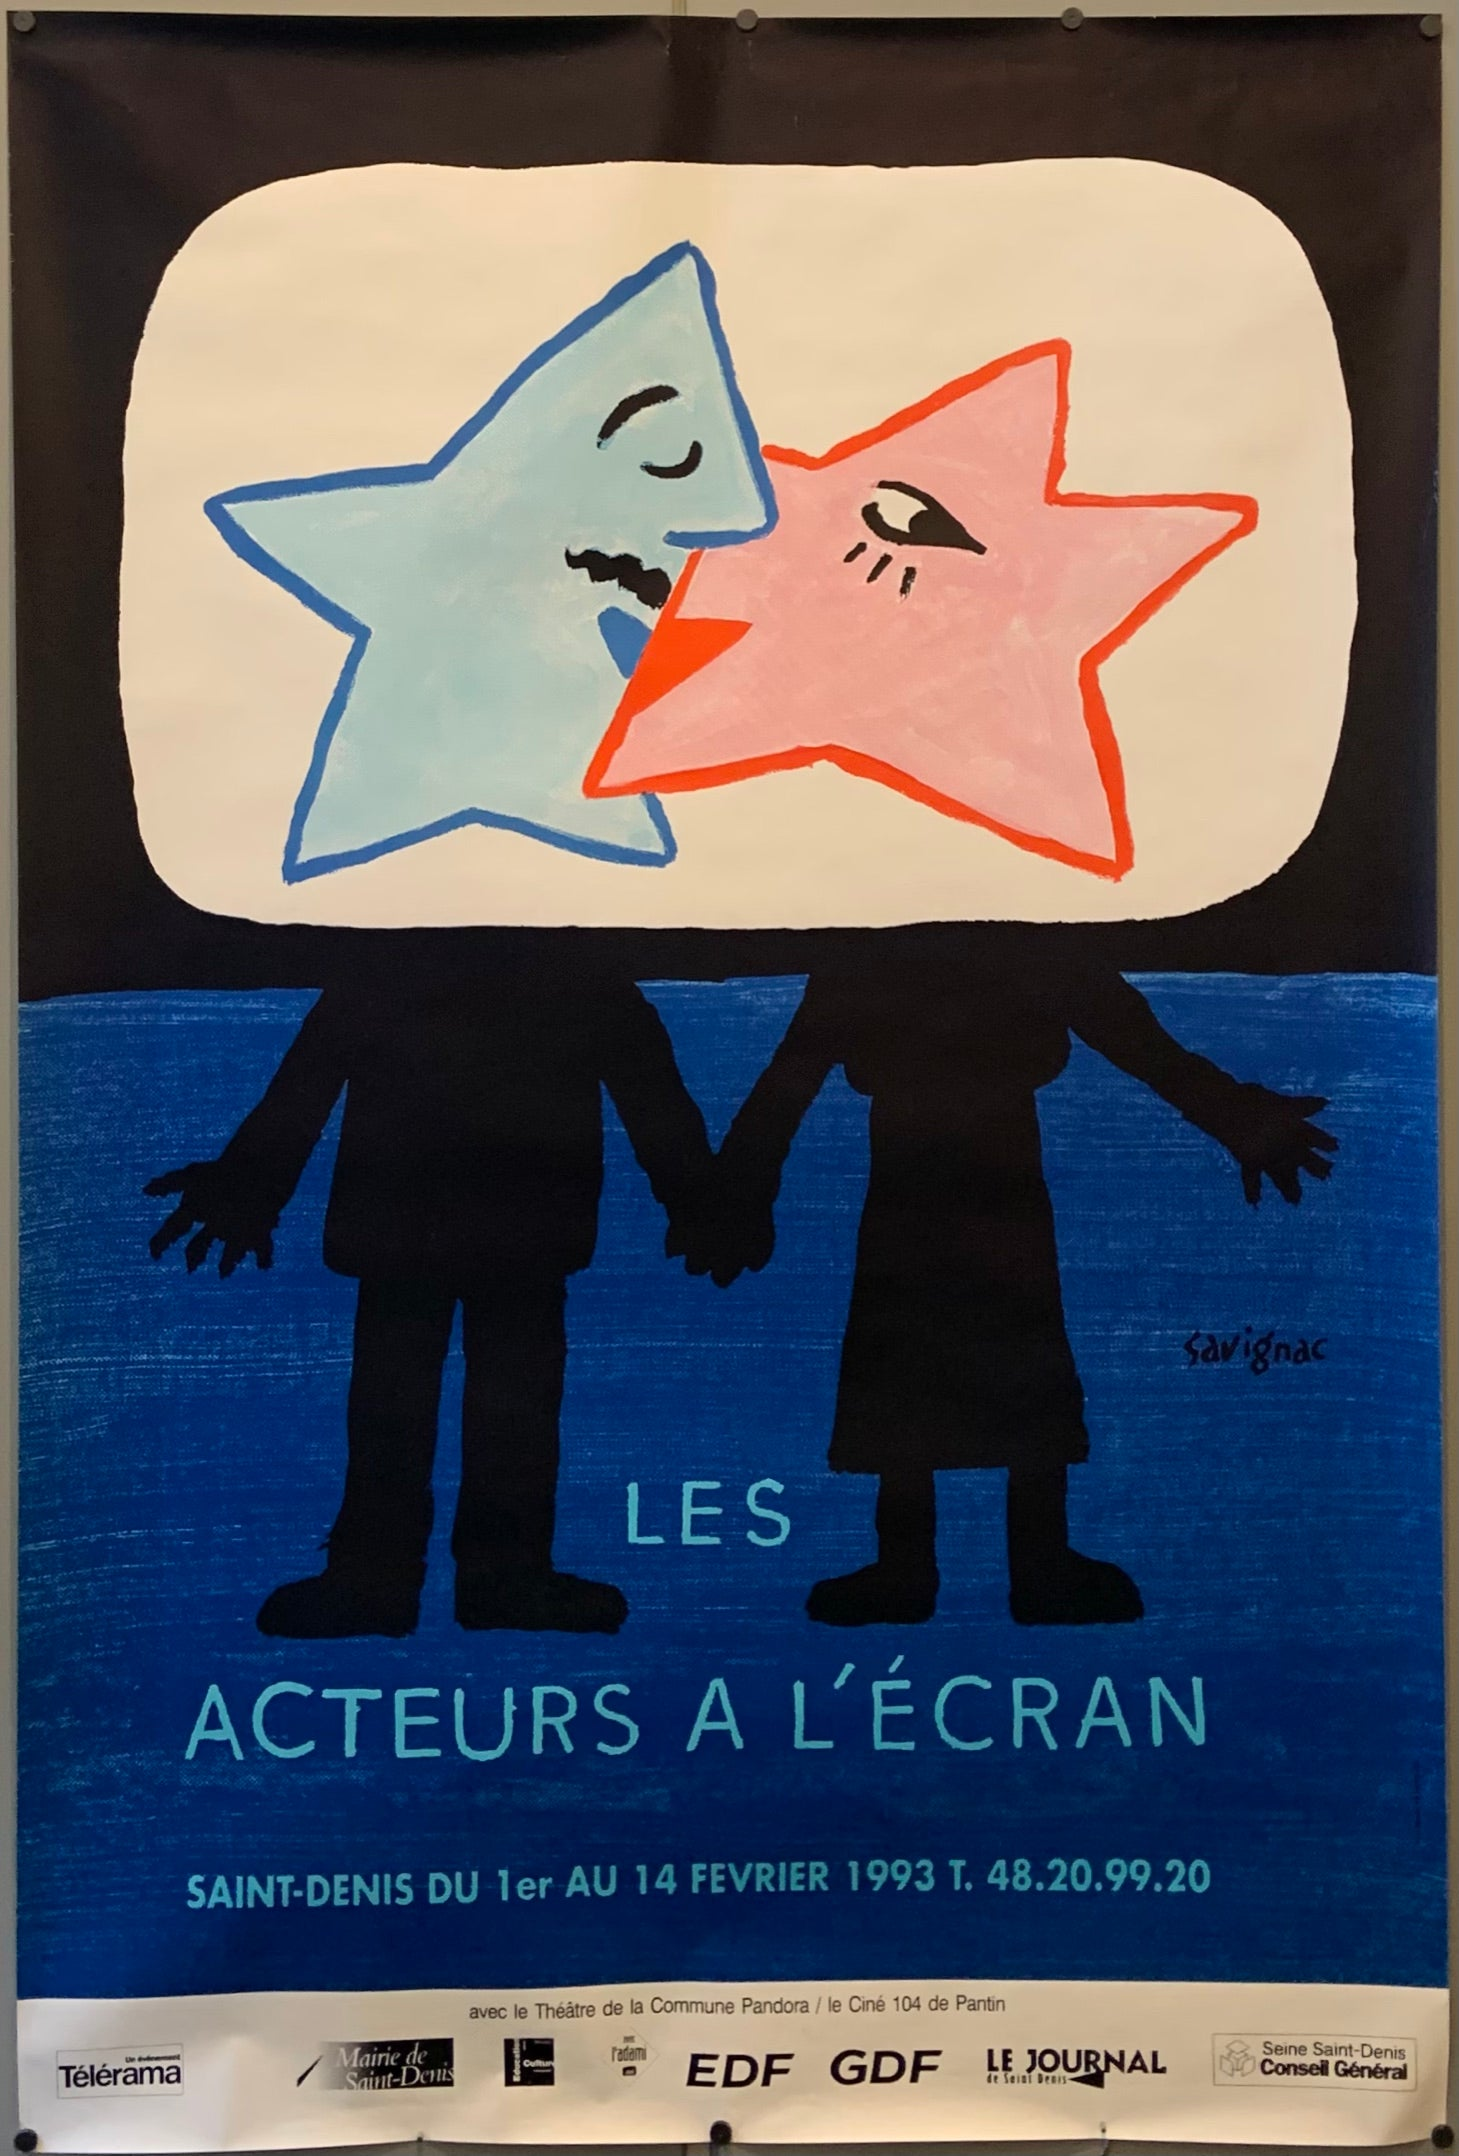 Poster for a film festival showing a couple with stars for heads, kissing.